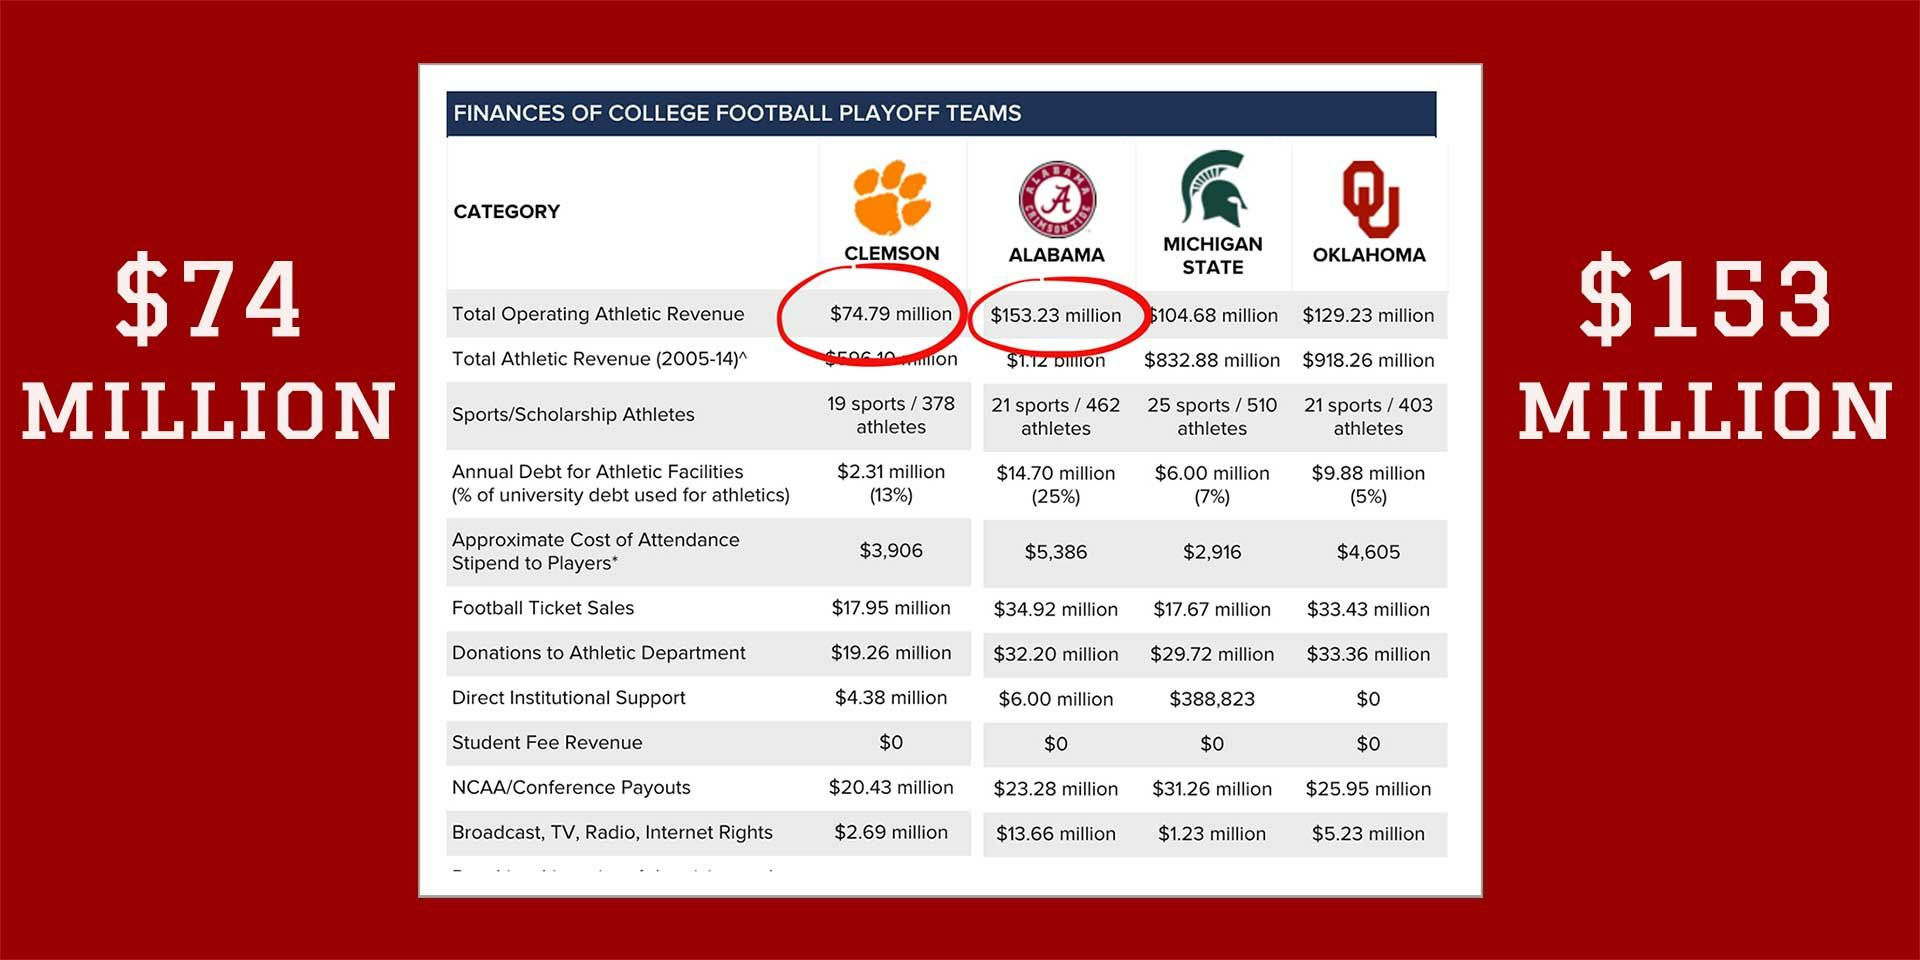 NationalChampionship Alabama RollTide spends MORE than